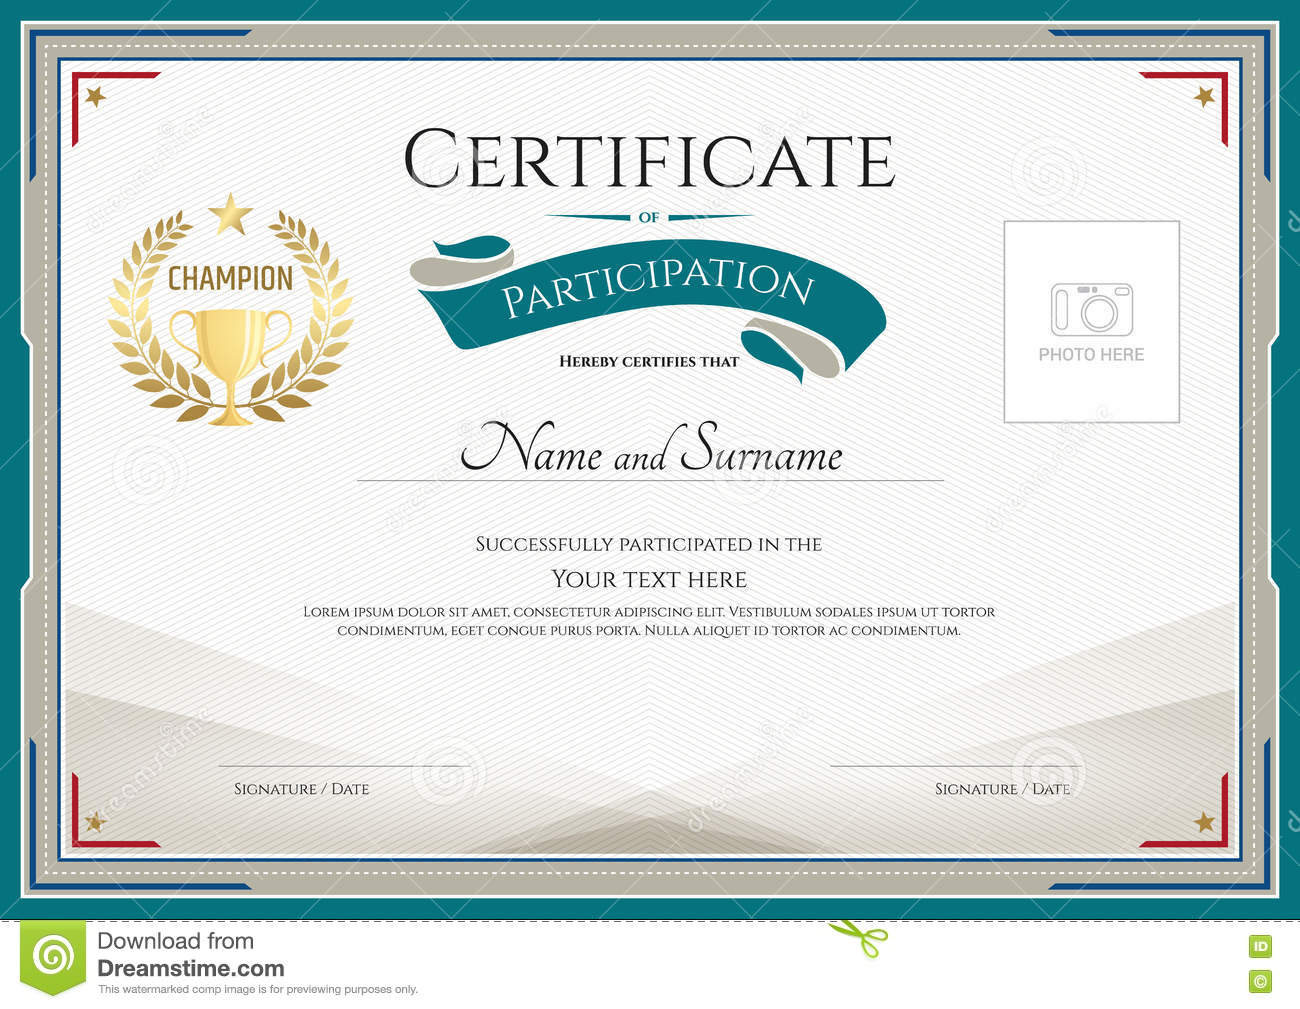 Certificate of participation template with green broder for Certification of participation free template